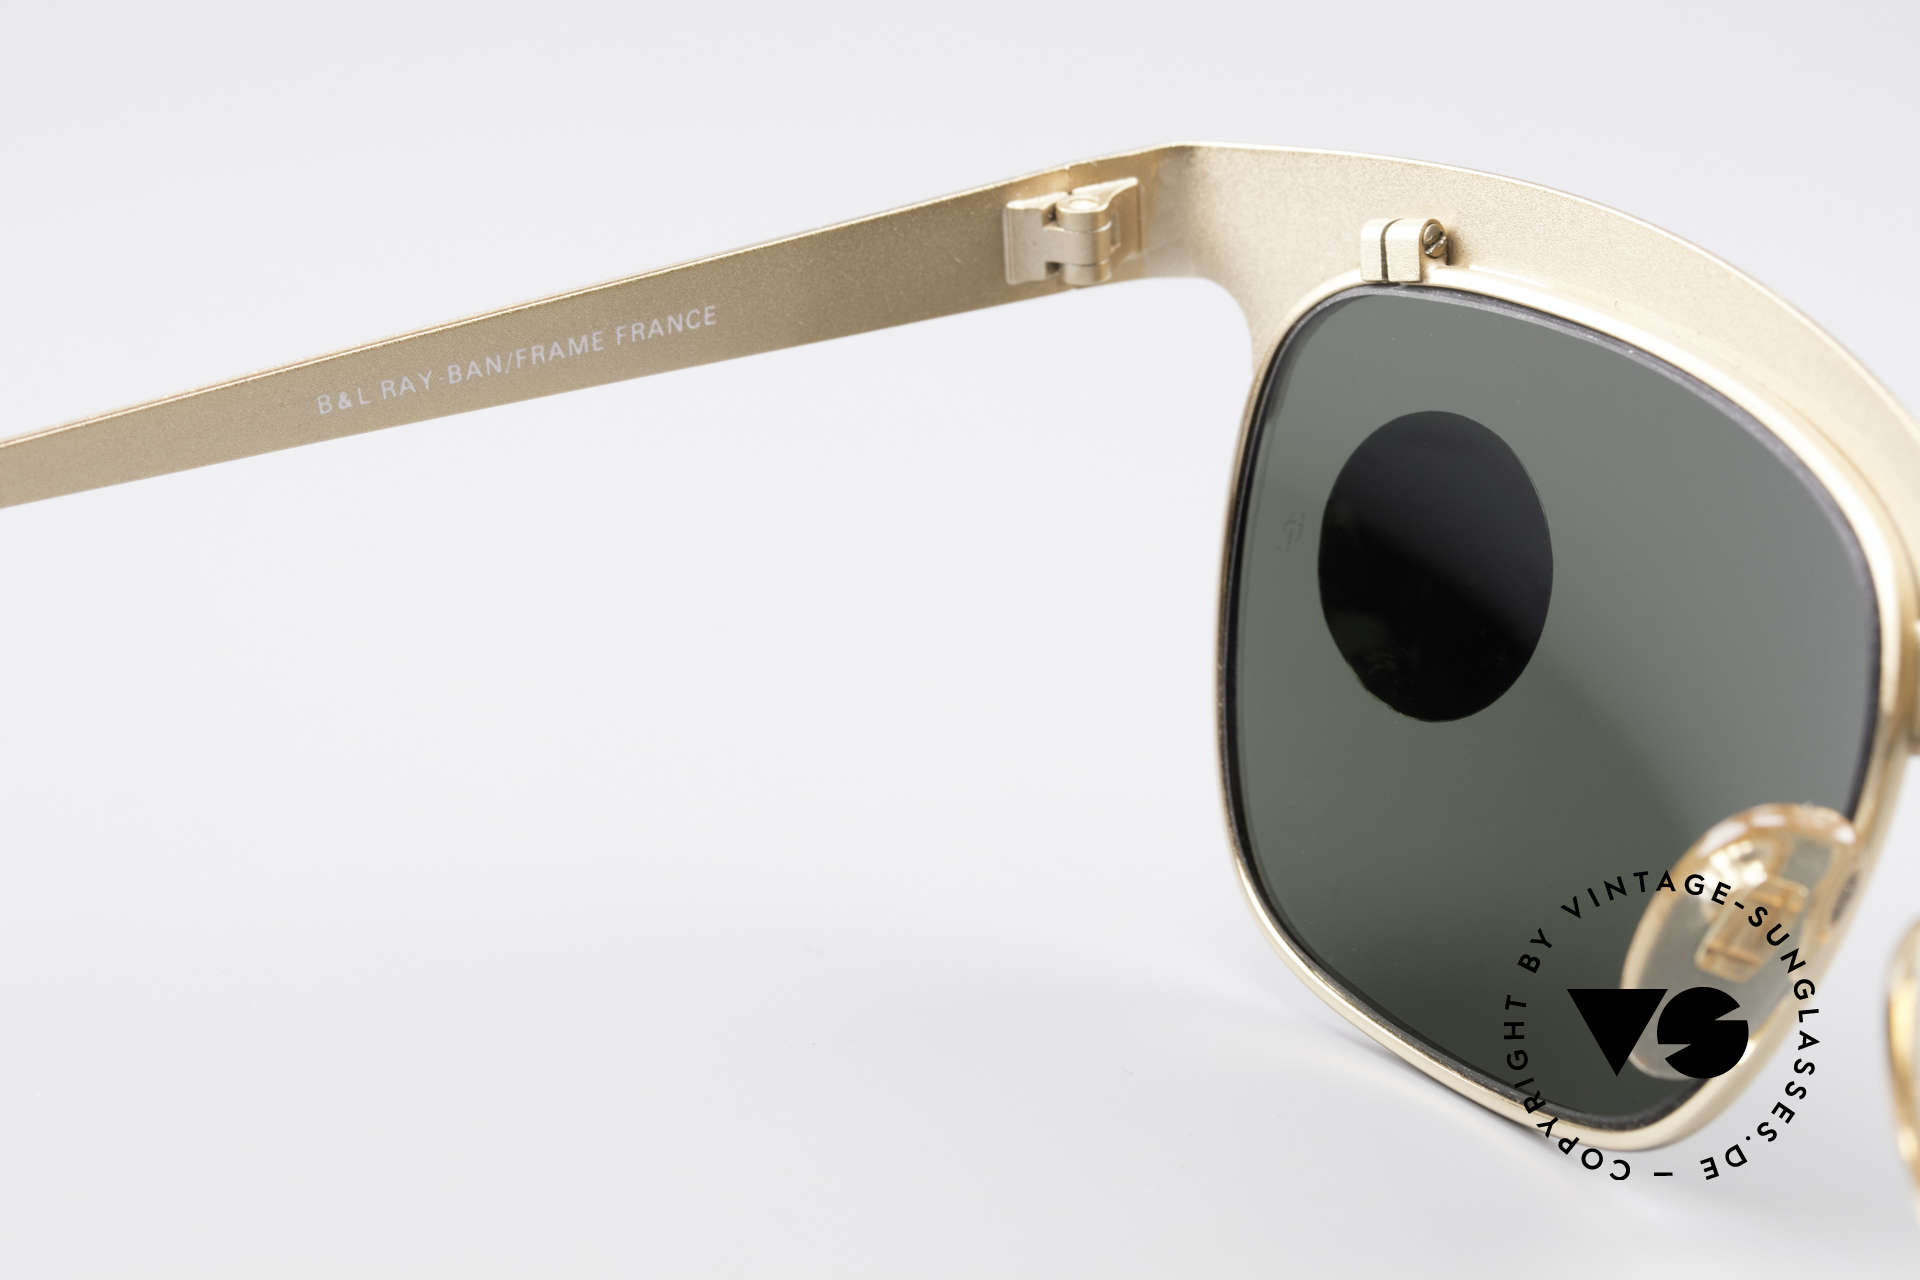 Ray Ban Nuevo 90's B&L Sunglasses W0755, never worn (like all our vintage Ray Ban shades), Made for Men and Women